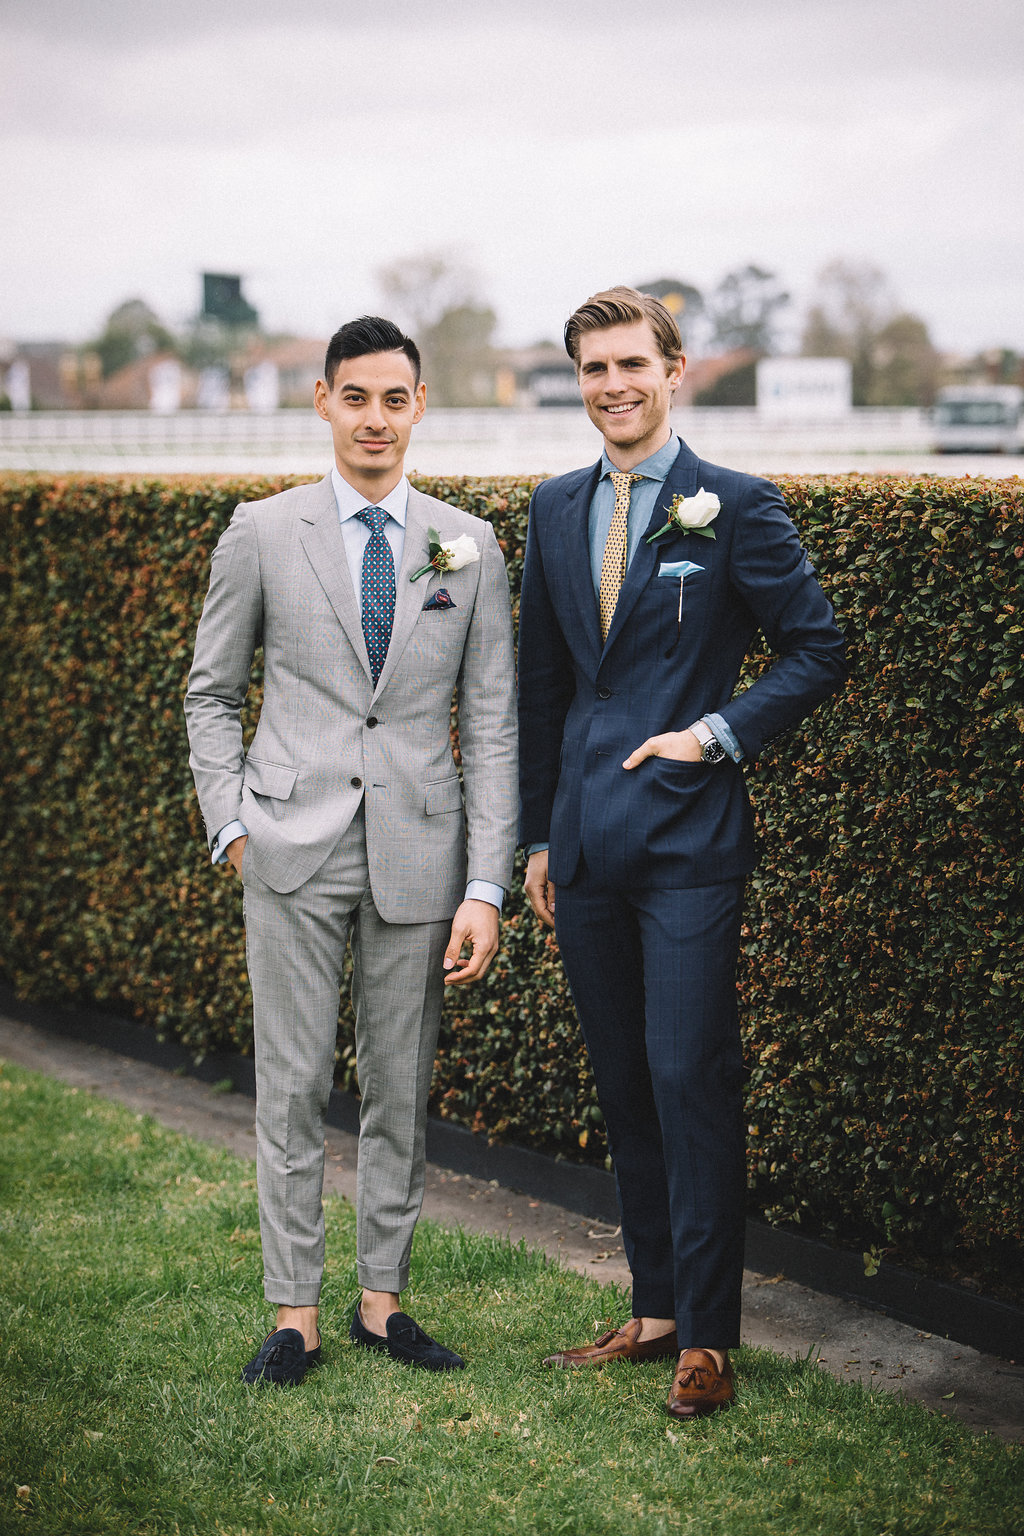 Harrolds Caulfield Cup mens fashion suits at Spring Racing Carnival in Melbourne